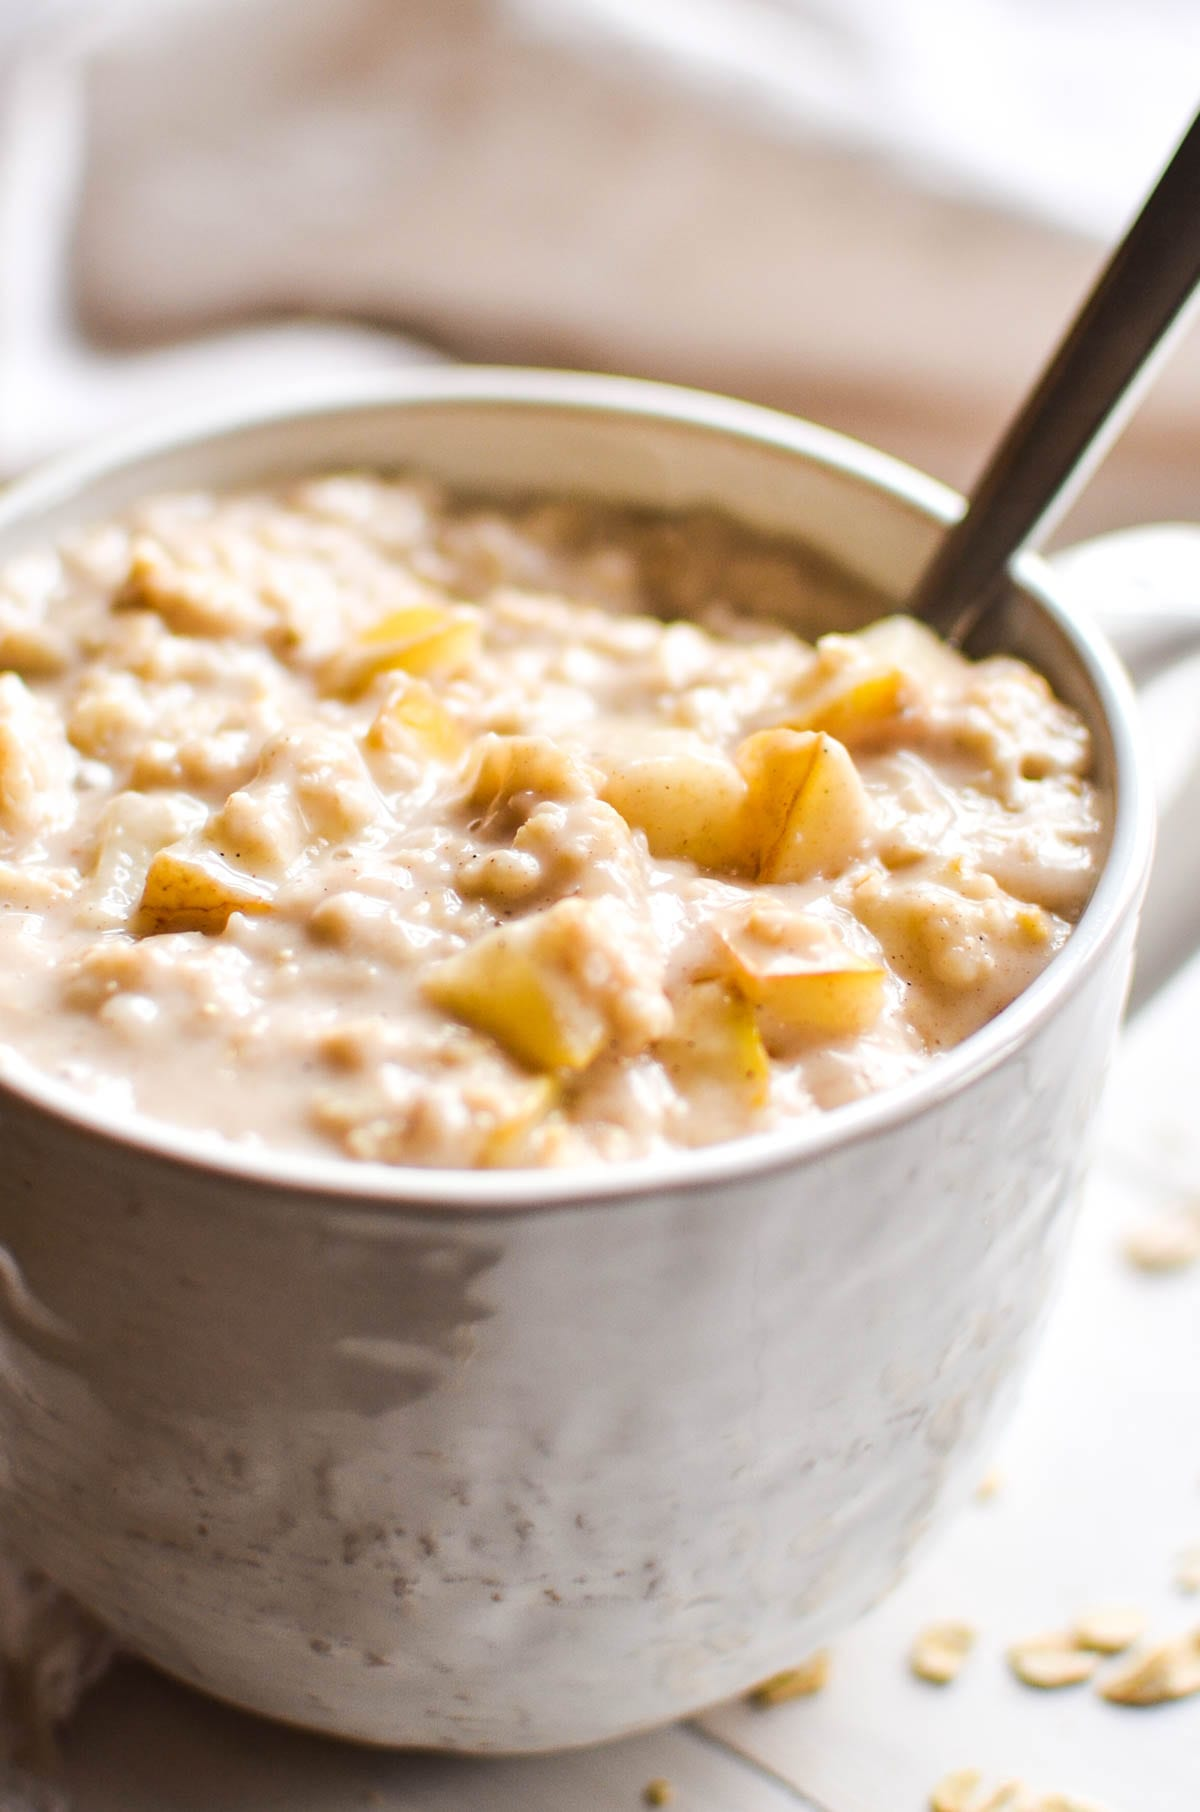 Vanilla spiced pear oatmeal with spoon